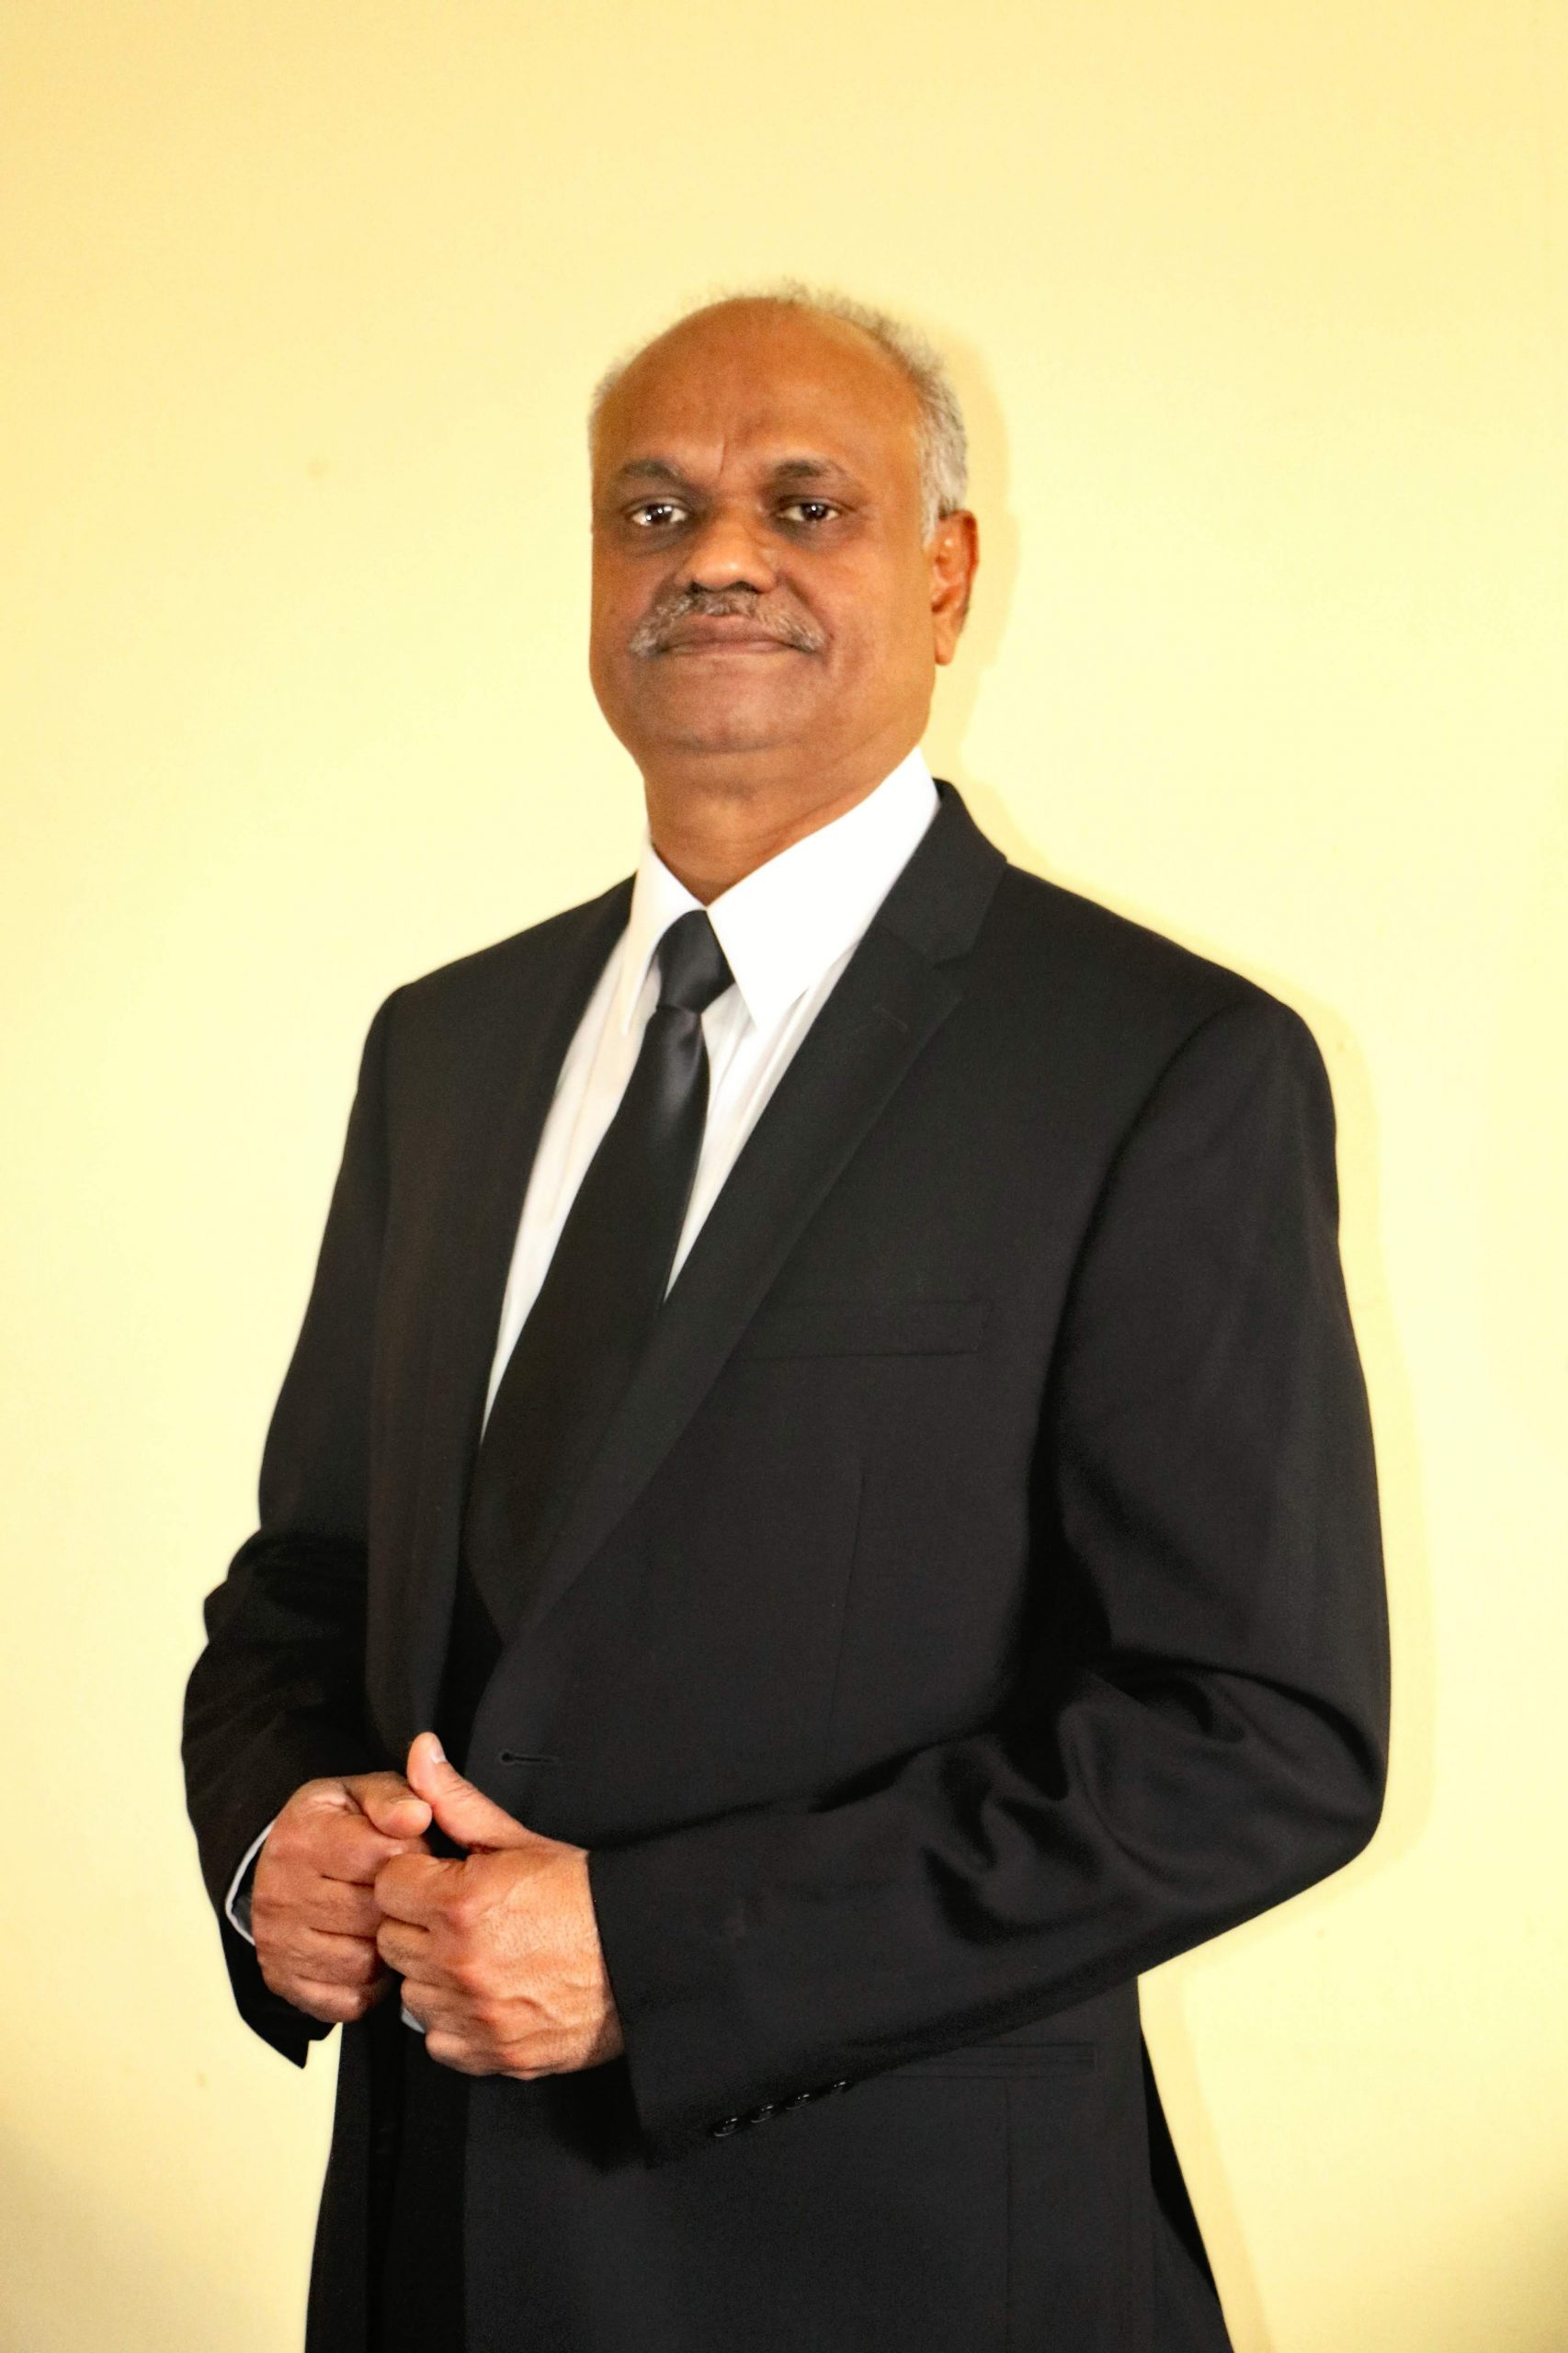 Murali Vidhyadharan gets a role in LonelyLeap